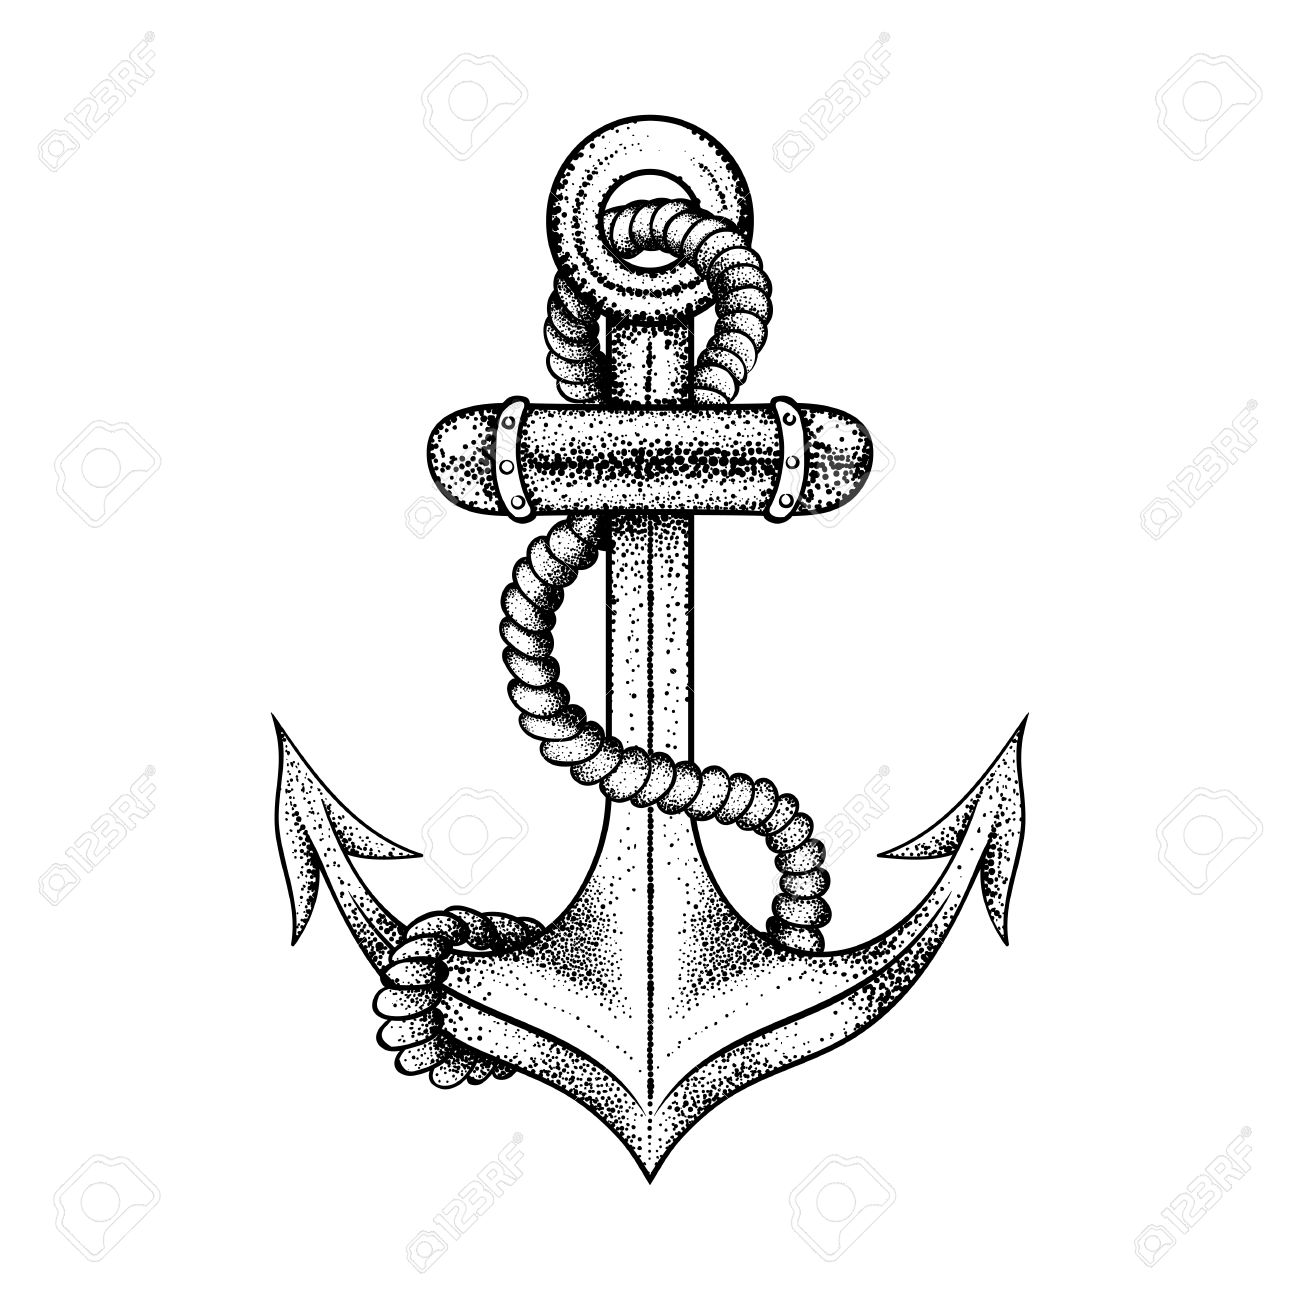 1300x1300 Hand Drawn Elegant Ship Sea Anchor With Rope, Black Sketch